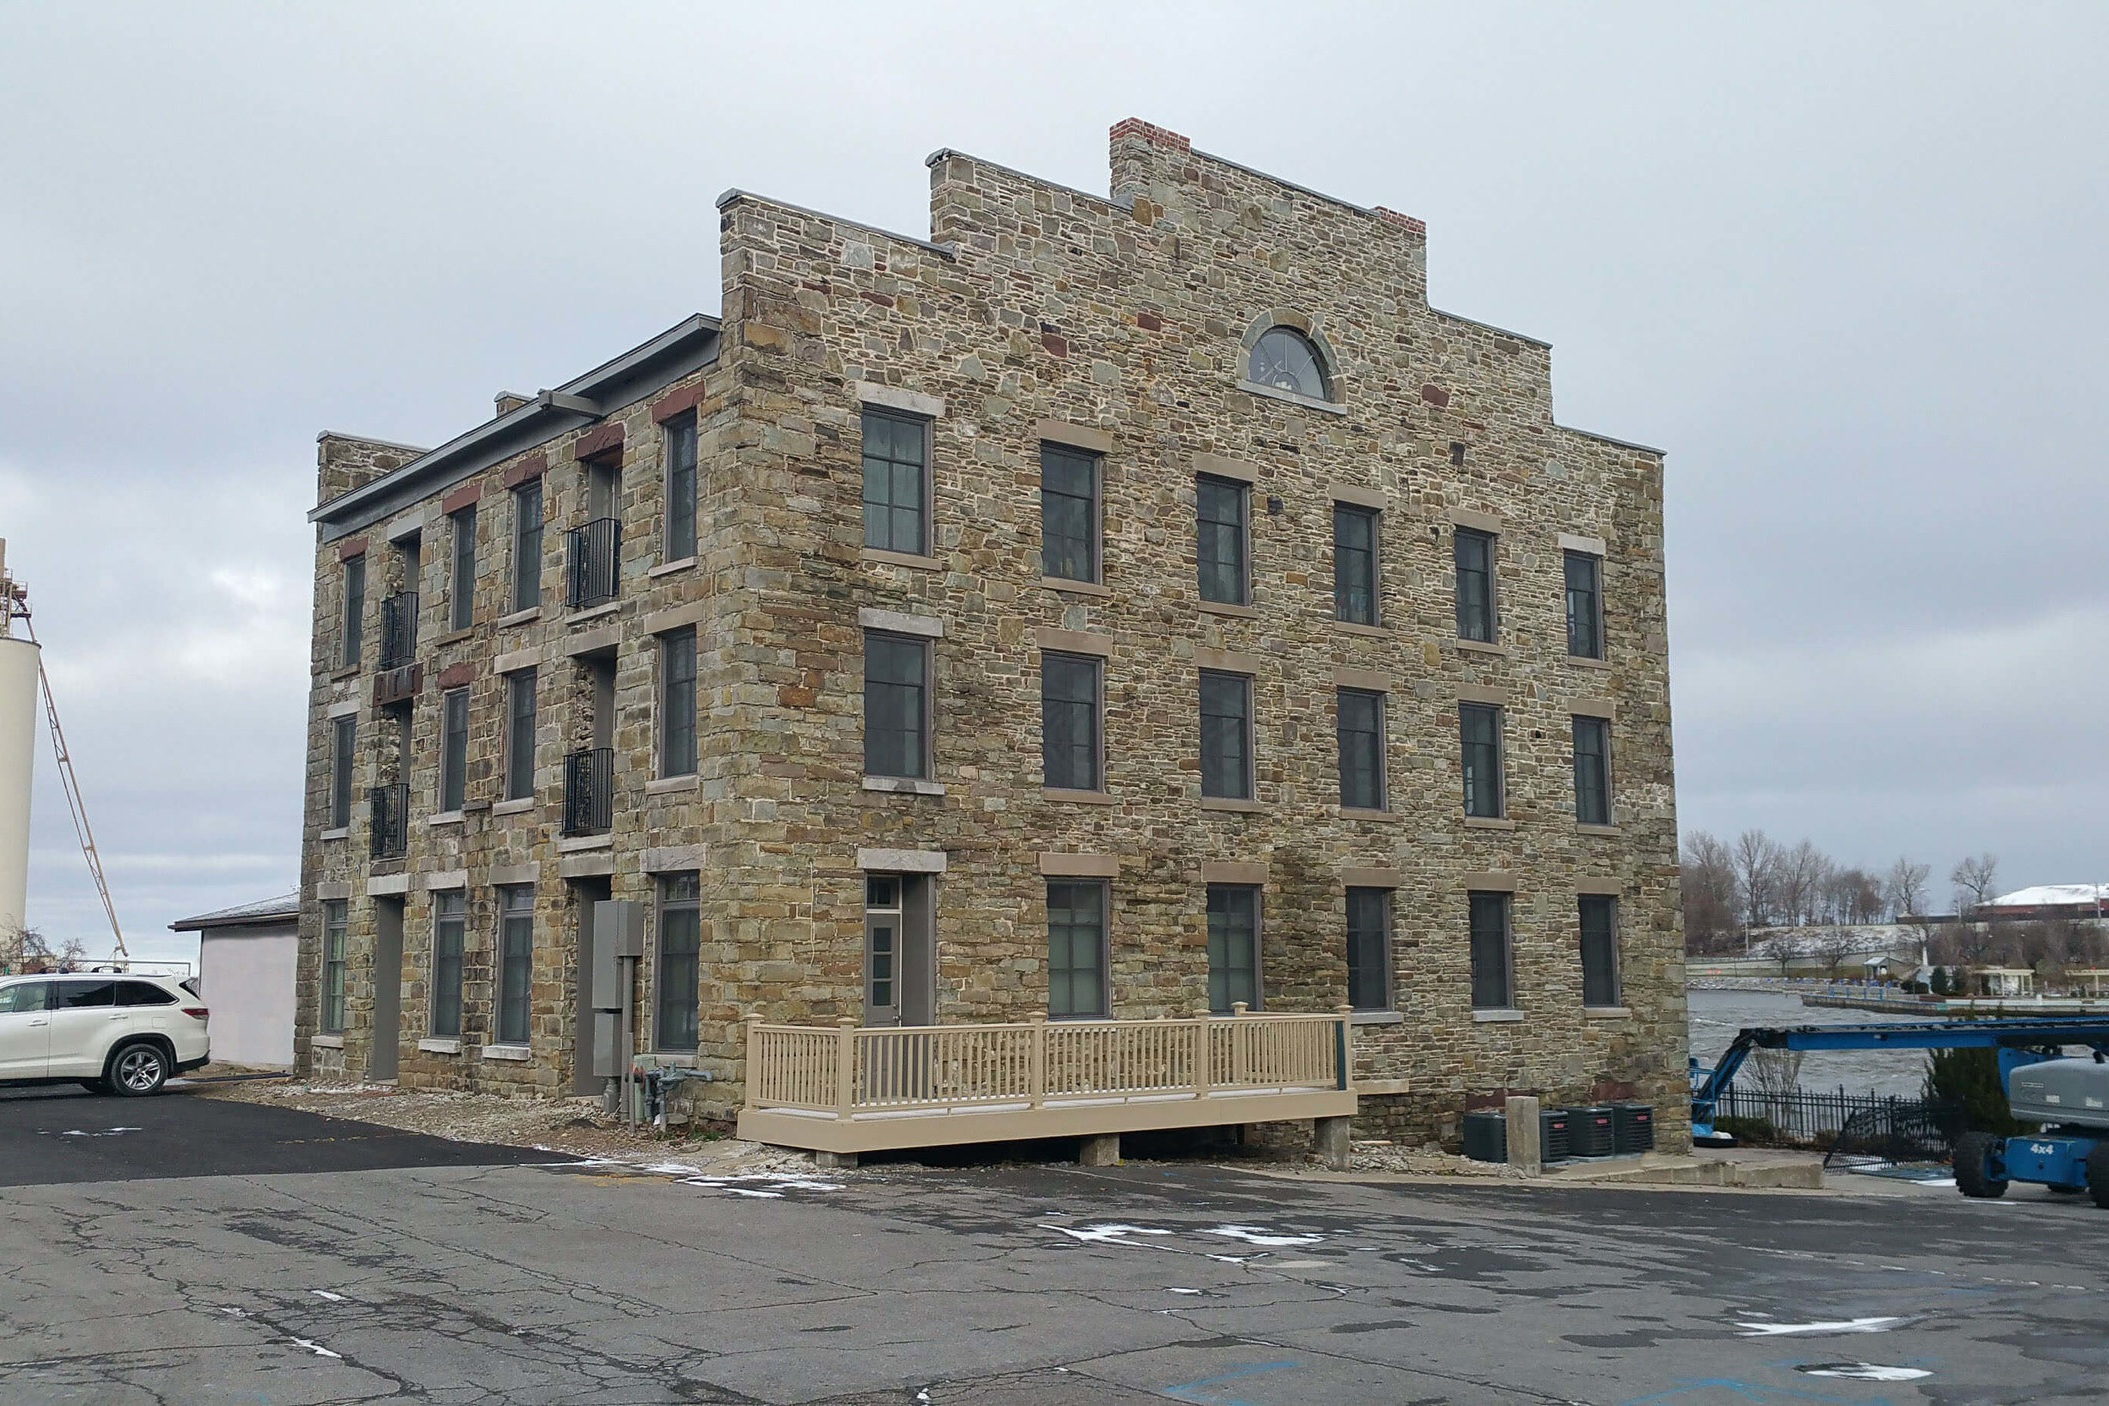 Photo courtesy of Crawford & Stearns, Architects